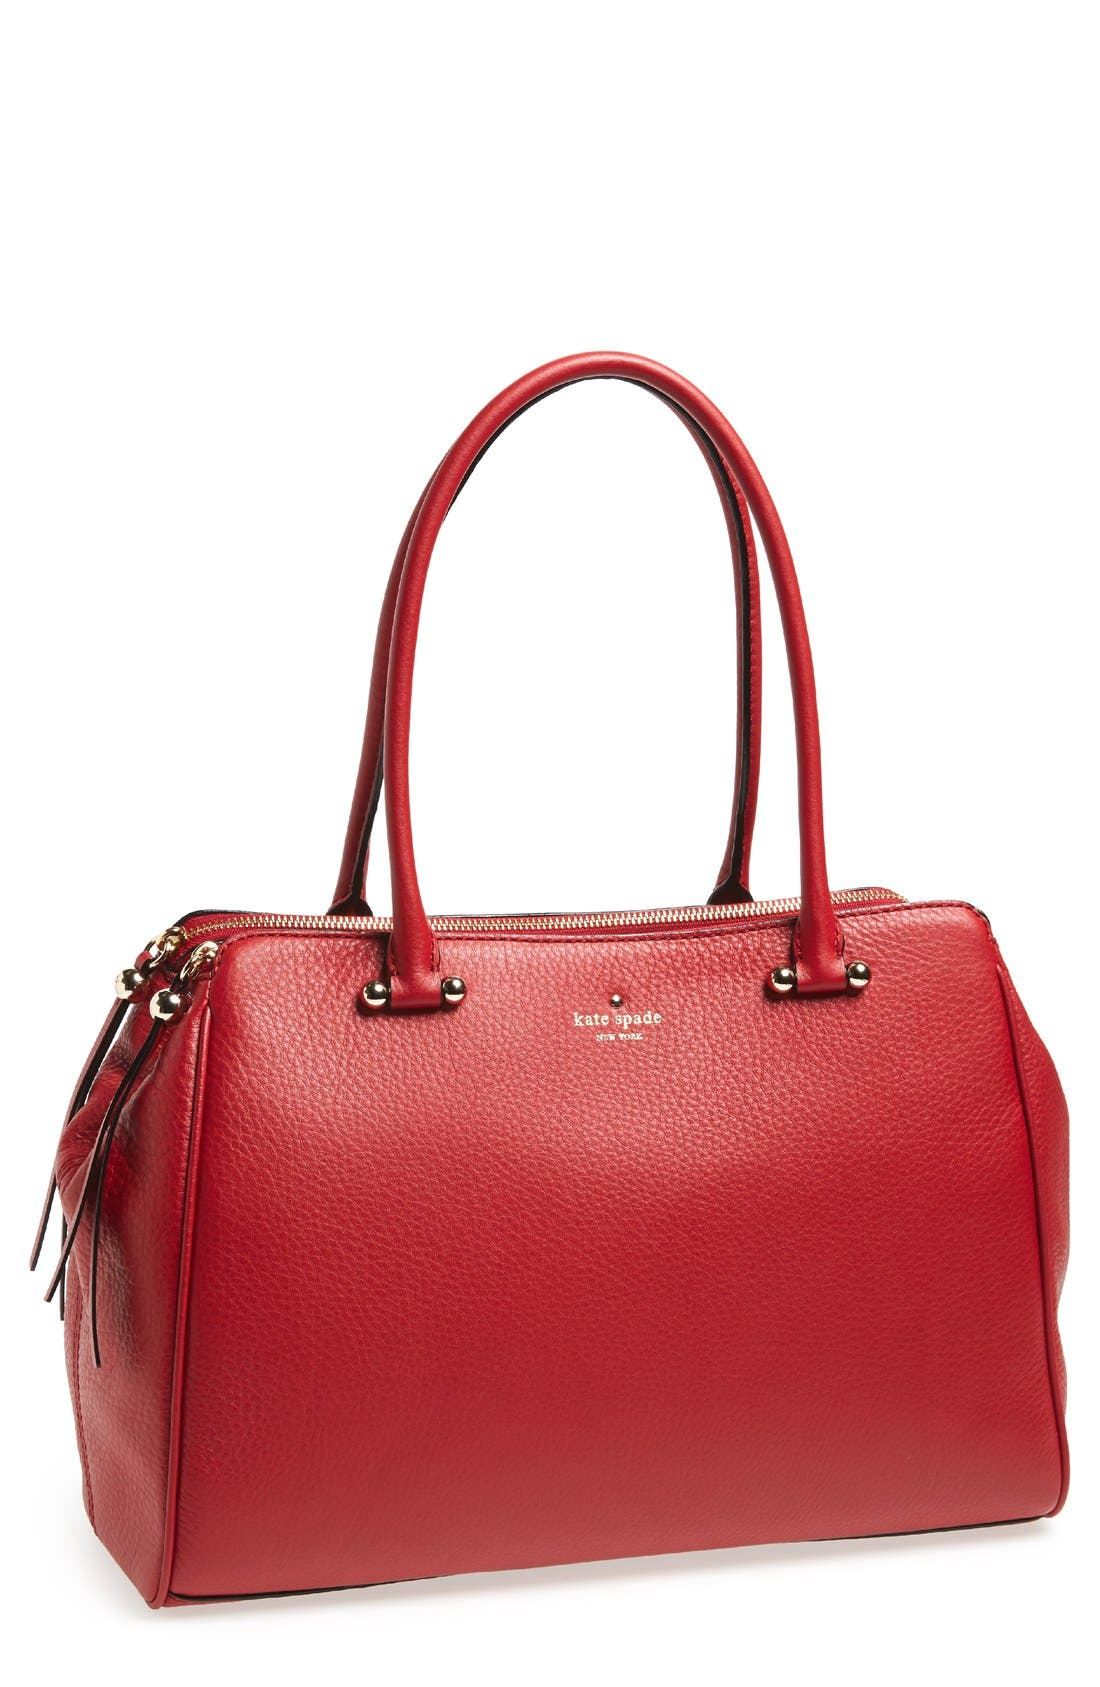 Alternate Image 1 Selected - kate spade new york 'kensington' leather tote